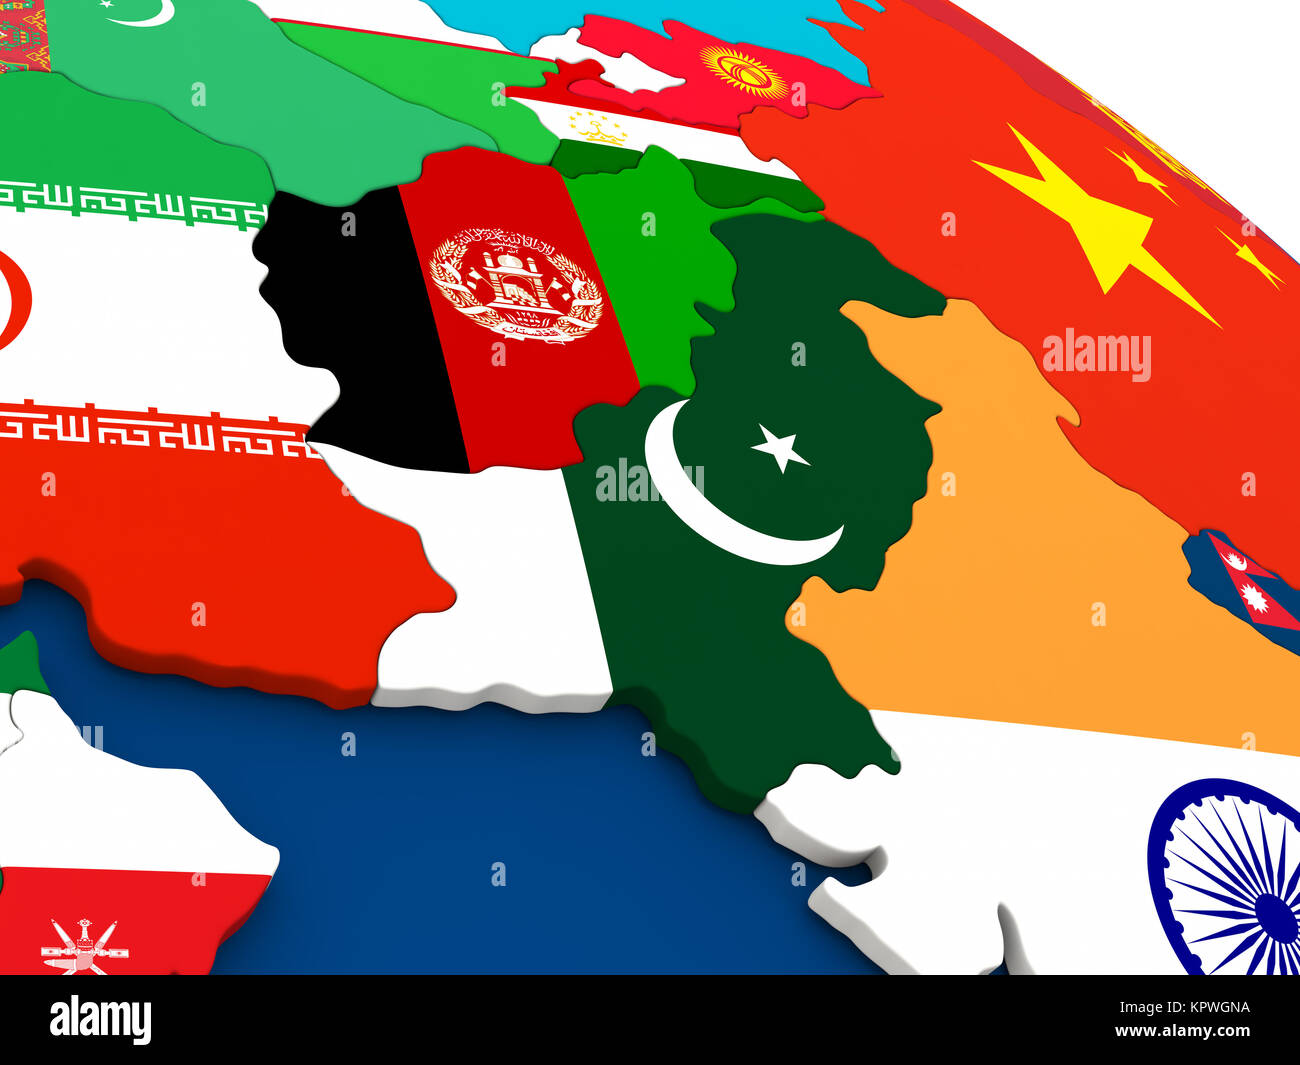 Afghanistan and Pakistan on globe with flags Stock Photo